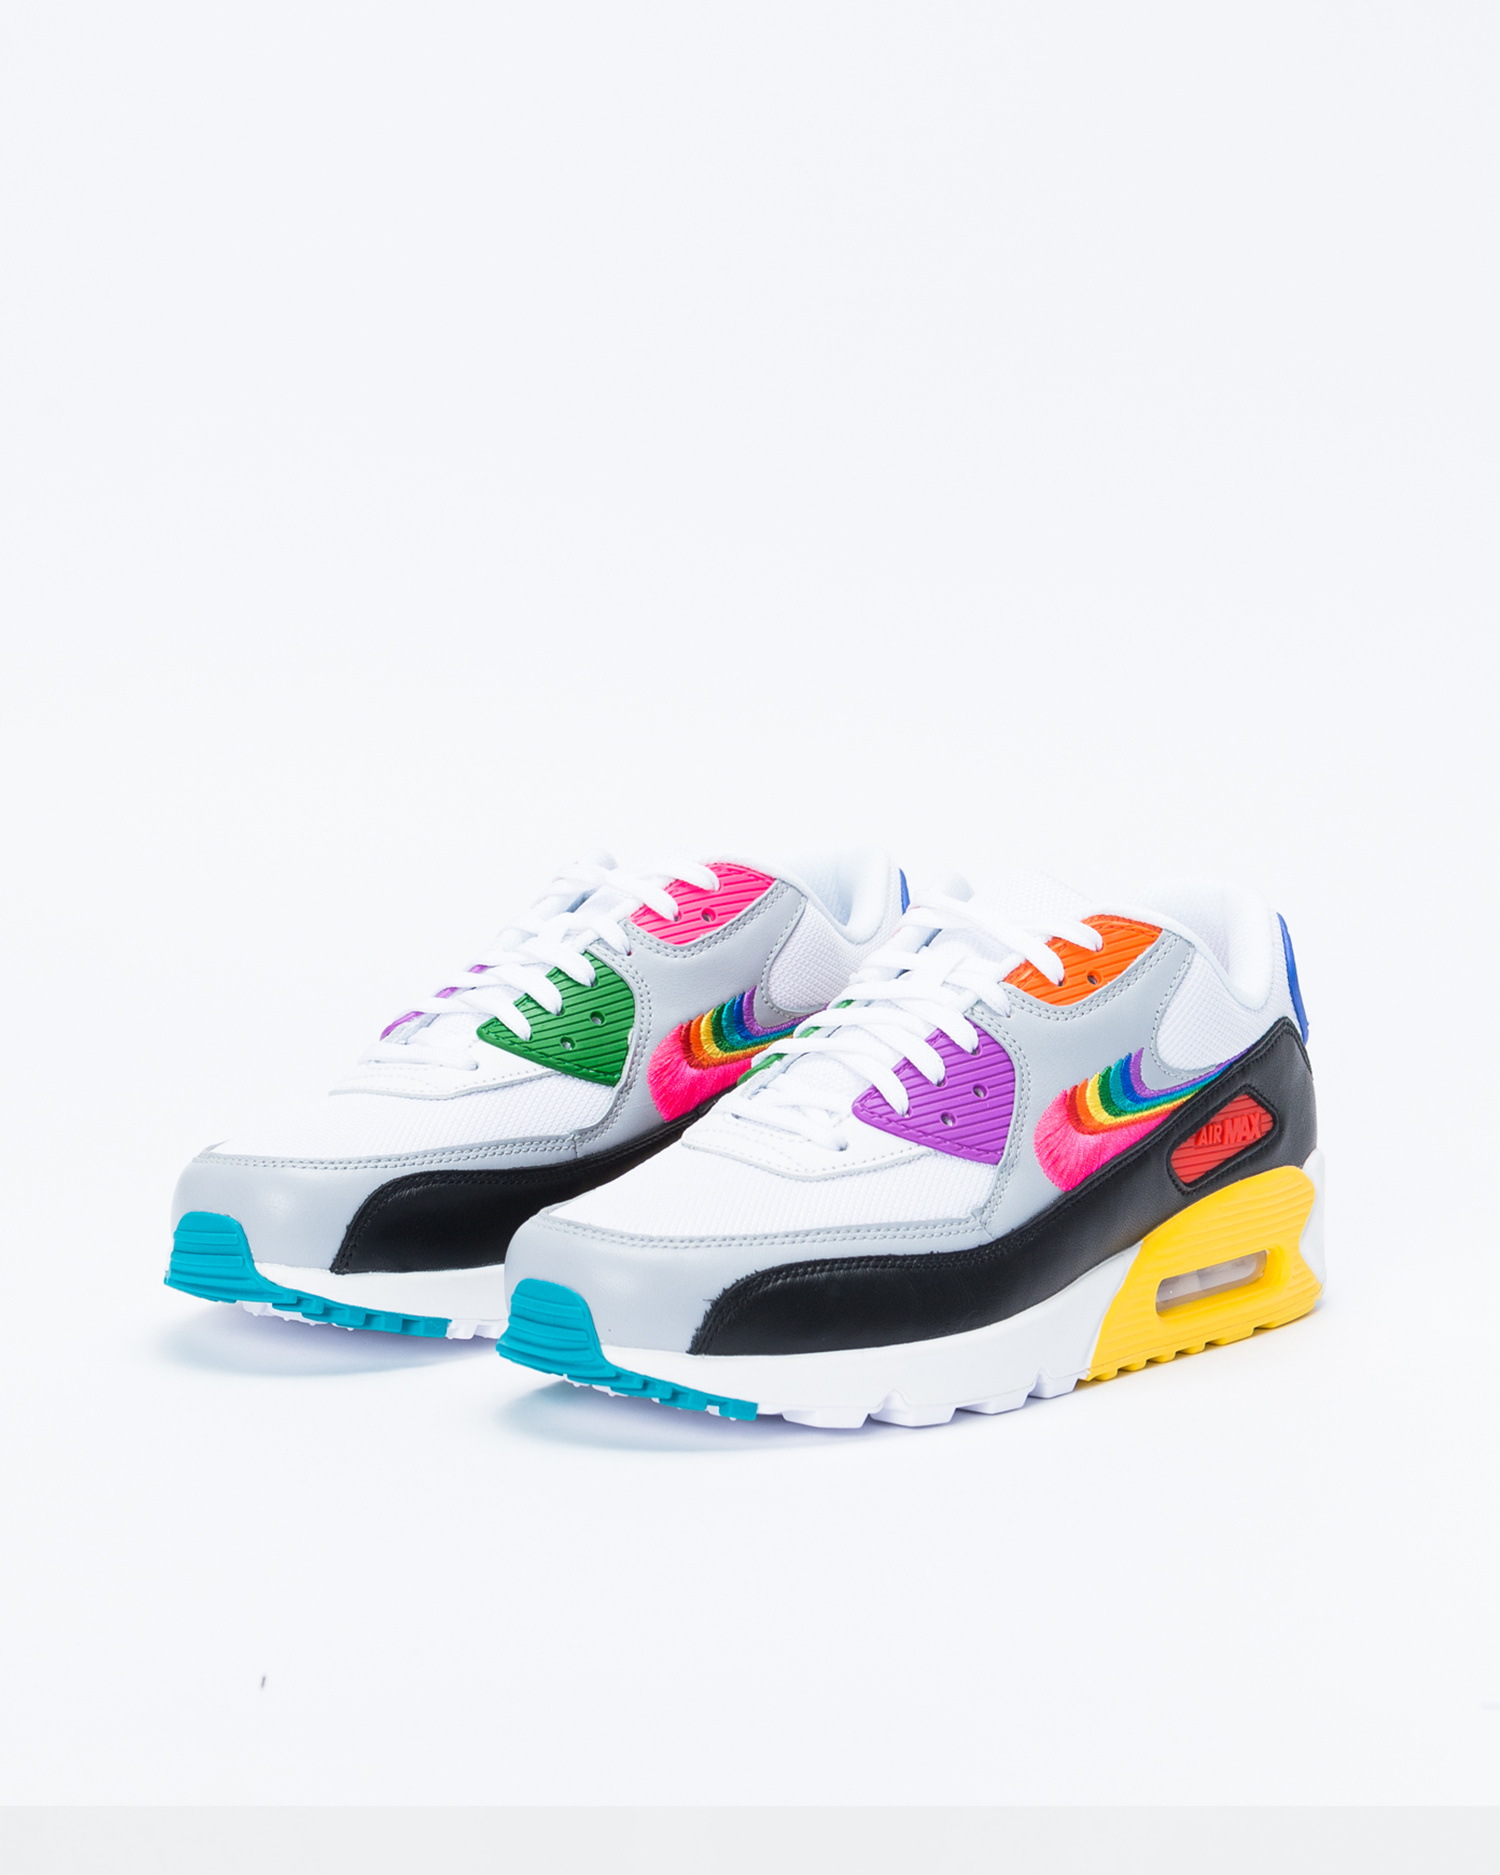 Nike Air Max 90 BETRUE White/Multi-Color-Black-Wolf Grey